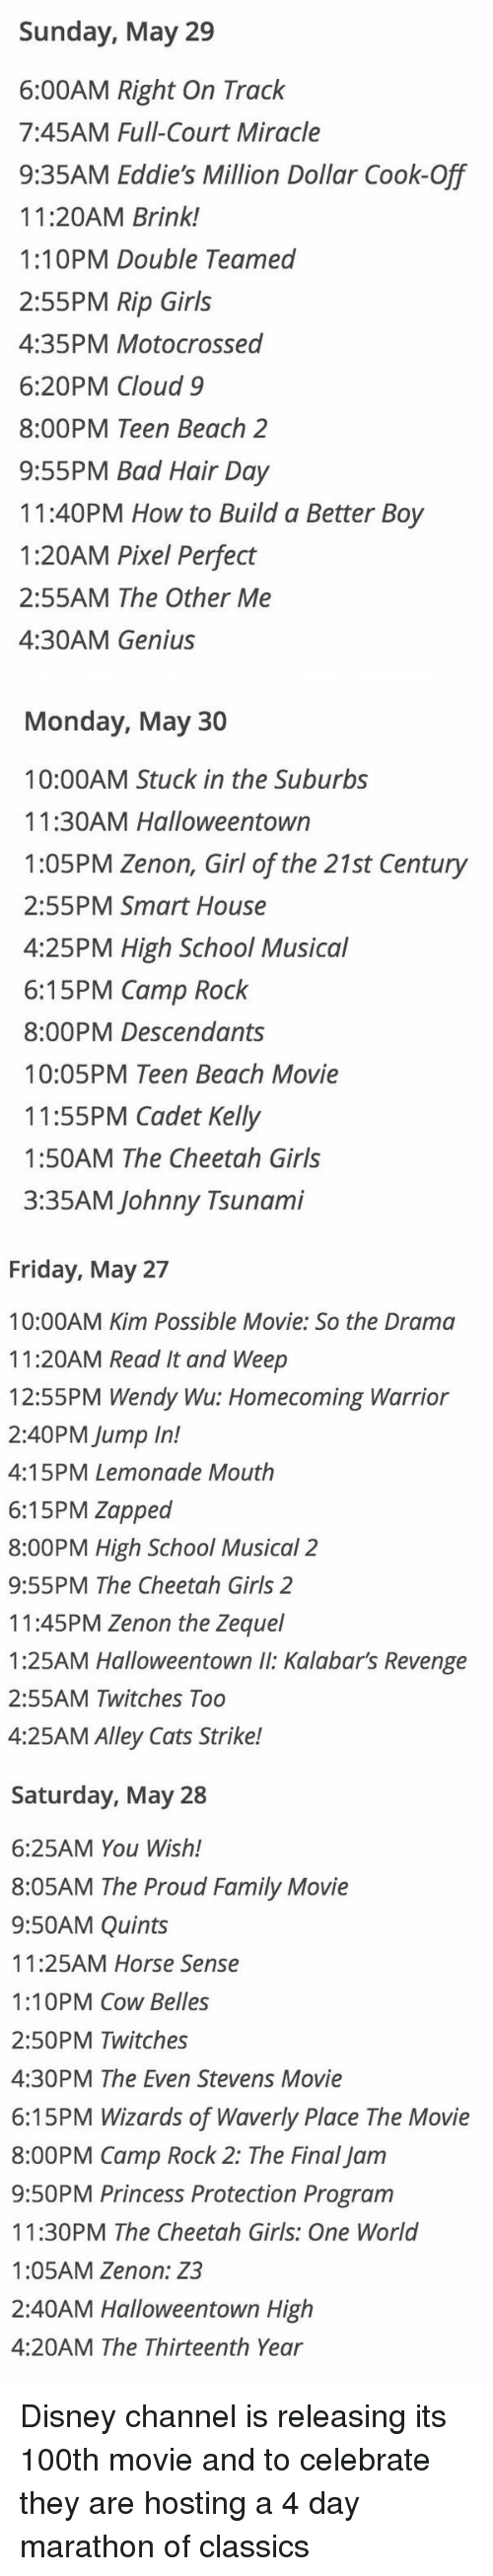 Lemonade: Sunday, May 29  6:00AM Right On Track  7:45AM Full-Court Miracle  9:35AM Eddie's Million Dollar Cook-Off  11:20AM Brink!  1:10PM Double Teamed  2:55PM Rip Girls  4:35PM Motocrossed  6:20PM Cloud 9  8:00PM Teen Beach 2  9:55PM Bad Hair Day  11:40PM How to Build a Better Boy  1:20AM Pixel Perfect  2:55AM The Other Me  4:30AM Genius   Monday, May 30  10:00AM Stuck in the Suburbs  11:30AM Halloweentown  1:05PM Zenon, Girl of the 21st Century  2:55PM Smart House  4:25PM High School Musical  6:15 PM Camp Rock  8:00PM Descendants  10:05PM Teen Beach Movie  11:55PM Cadet Kelly  1:50AM The Cheetah Girls  3:35AM Johnny Tsunami   Friday, May 27  10:00AM Kim Possible Movie: So the Drama  11:20AM Read It and Weep  12:55PM Wendy Wu: Homecoming Warrior  2:40PM Jump In!  4:15PM Lemonade Mouth  6:15PM Zapped  8:00PM High School Musical 2  9:55PM The Cheetah Girls 2  11:45PM Zenon the Zequel  1:25AM Halloweentown Kalabar's Revenge  2:55AM Twitches Too  4:25AM Alley Cats Strike!   Saturday, May 28  6:25AM You Wish!  8:05AM The Proud Family Movie  9:50AM Quints  11:25AM Horse Sense  1:10PM Cow Belles  2:50PM Twitches  4:30PM The Even Stevens Movie  6:15PM Wizards of Waverly Place The Movie  8:00PM Camp Rock 2: The Final Jam  9:50PM Princess Protection Program  11:30PM The Cheetah Girls: One World  1:05AM Zenon: Z3  2:40AM Halloweentown High  4:20AM The Thirteenth Year Disney channel is releasing its 100th movie and to celebrate they are hosting a 4 day marathon of classics